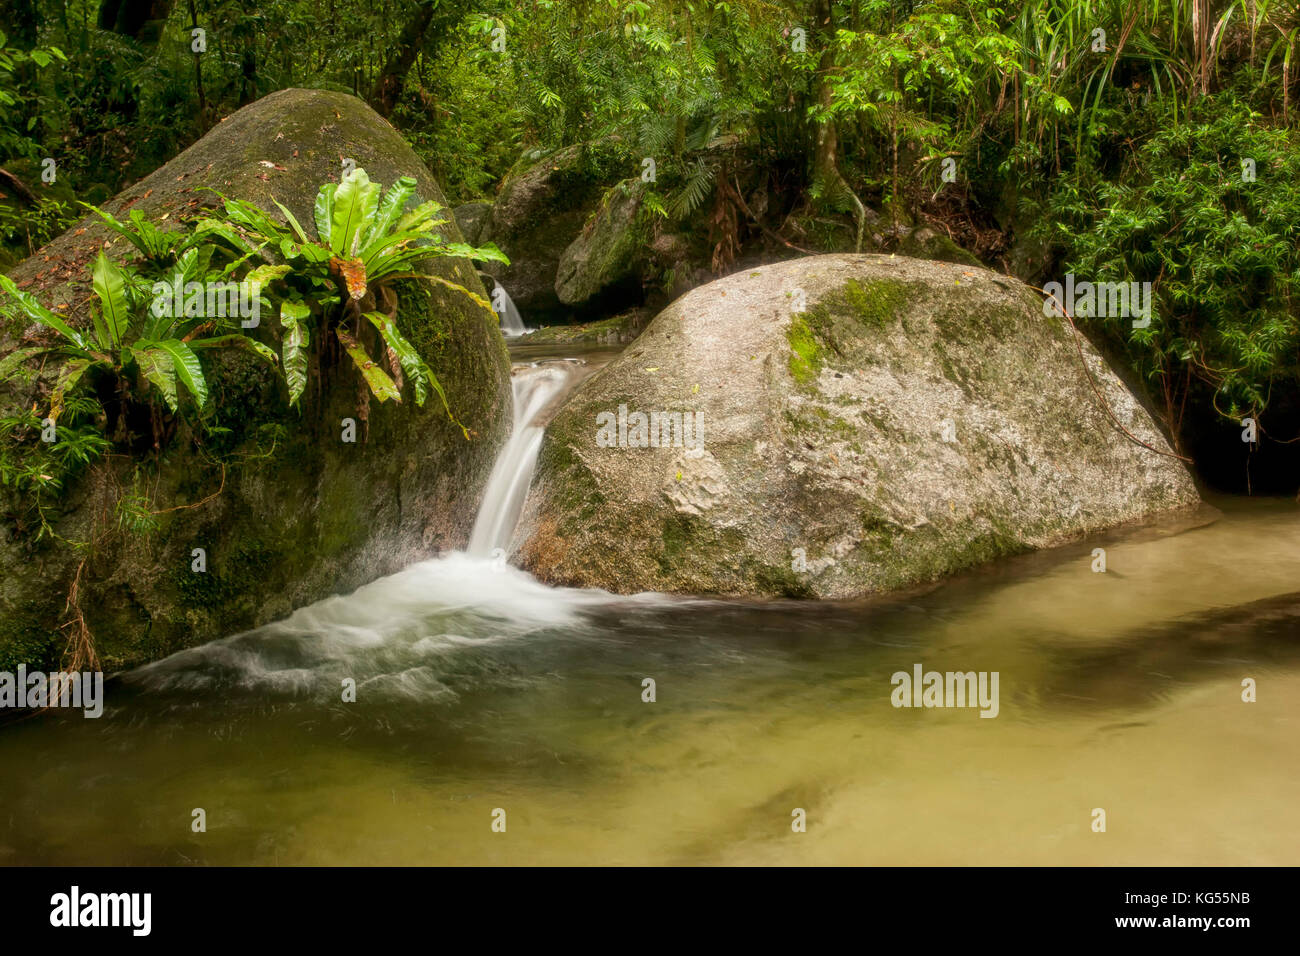 White water between two large boulders in stream, mossman gorge, Australia - Stock Image